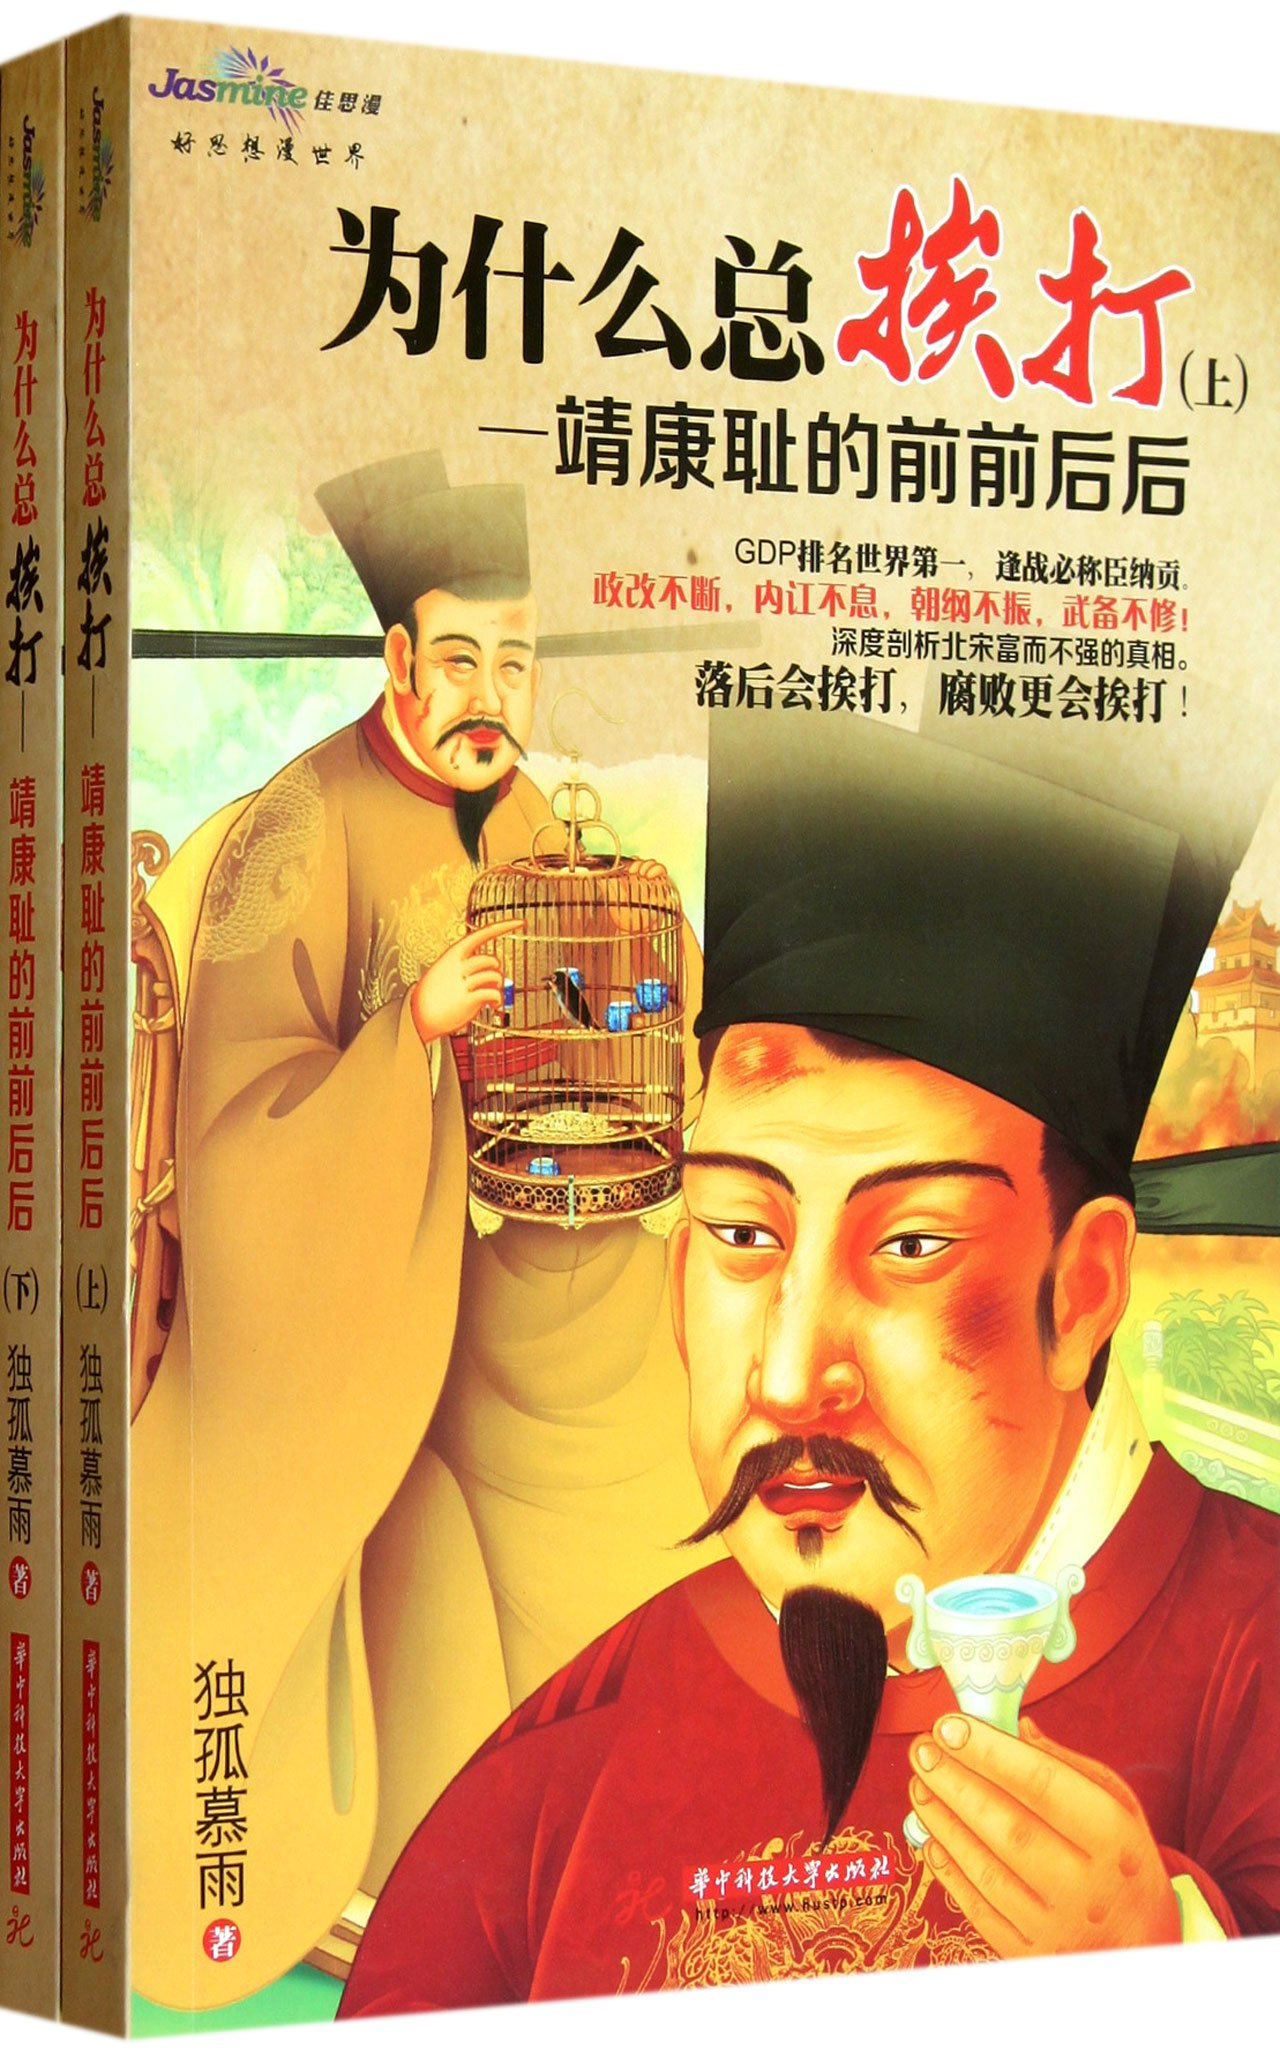 Download Why Always Be the Loser --The Whole Story of Jingkang Turmoil in Song Dynasty                            (2 volumes) (Chinese Edition) PDF